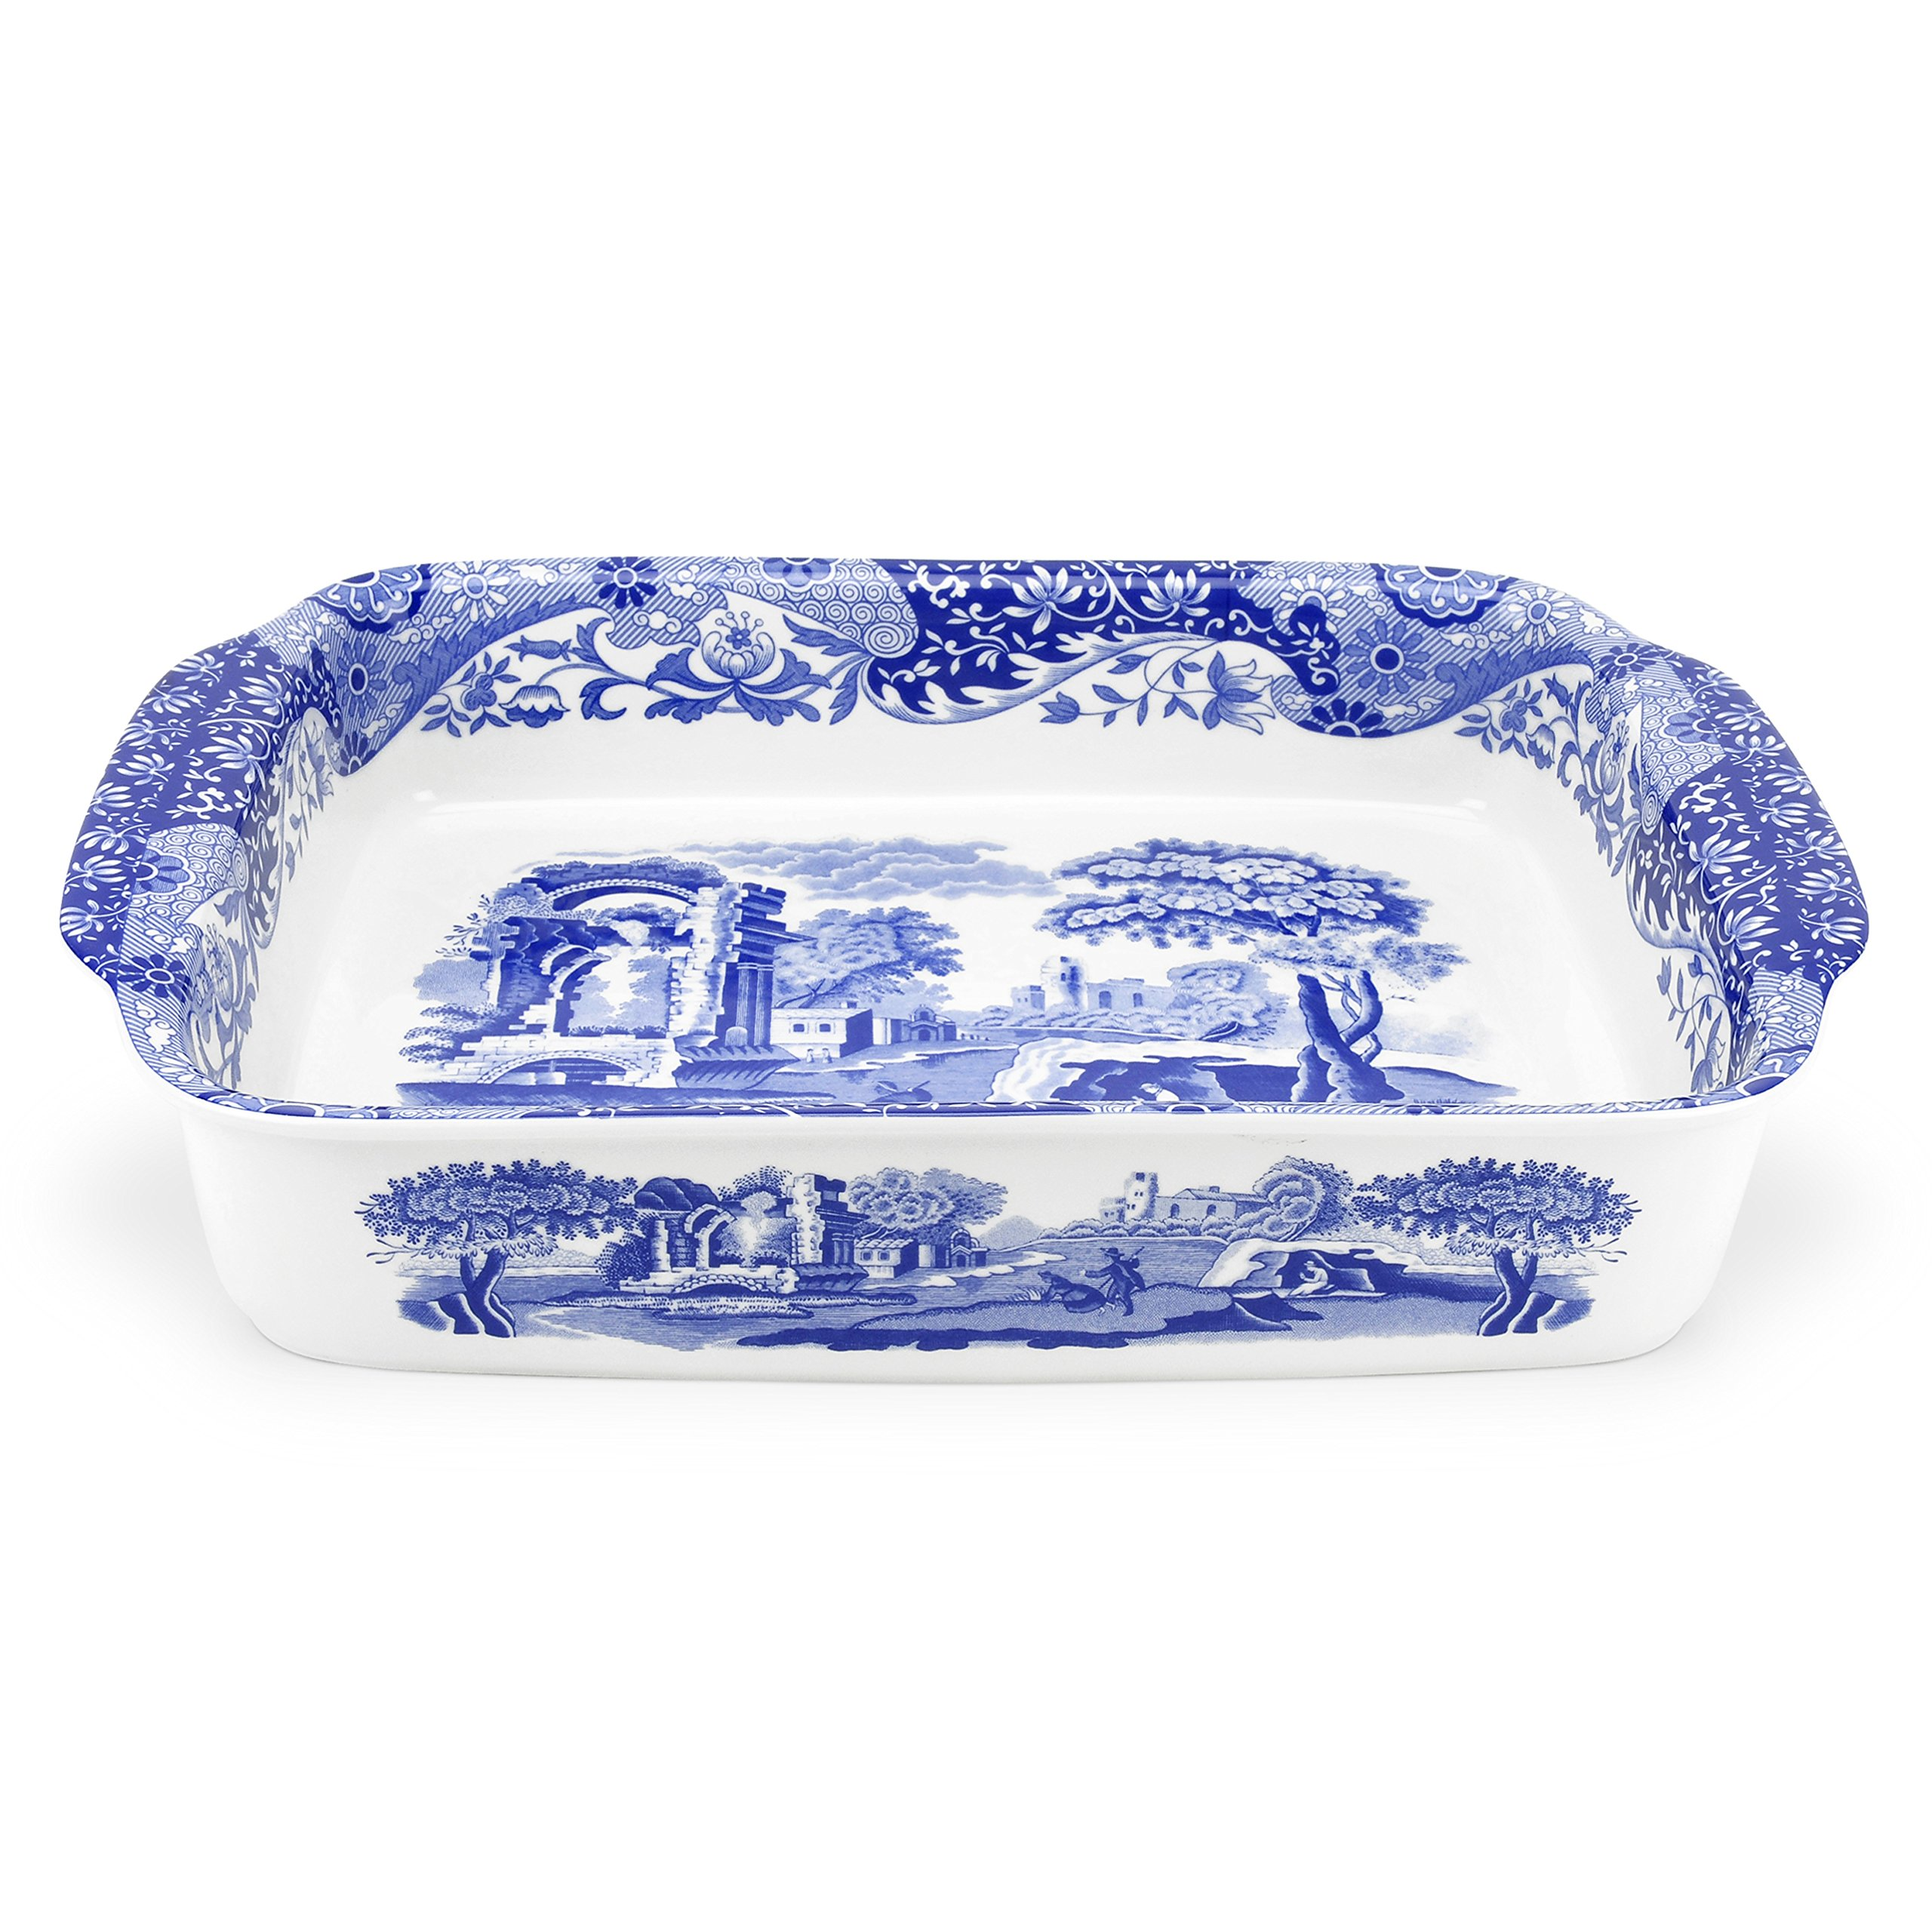 Spode Blue Italian Rectangle Handled Dish Large by Spode (Image #1)